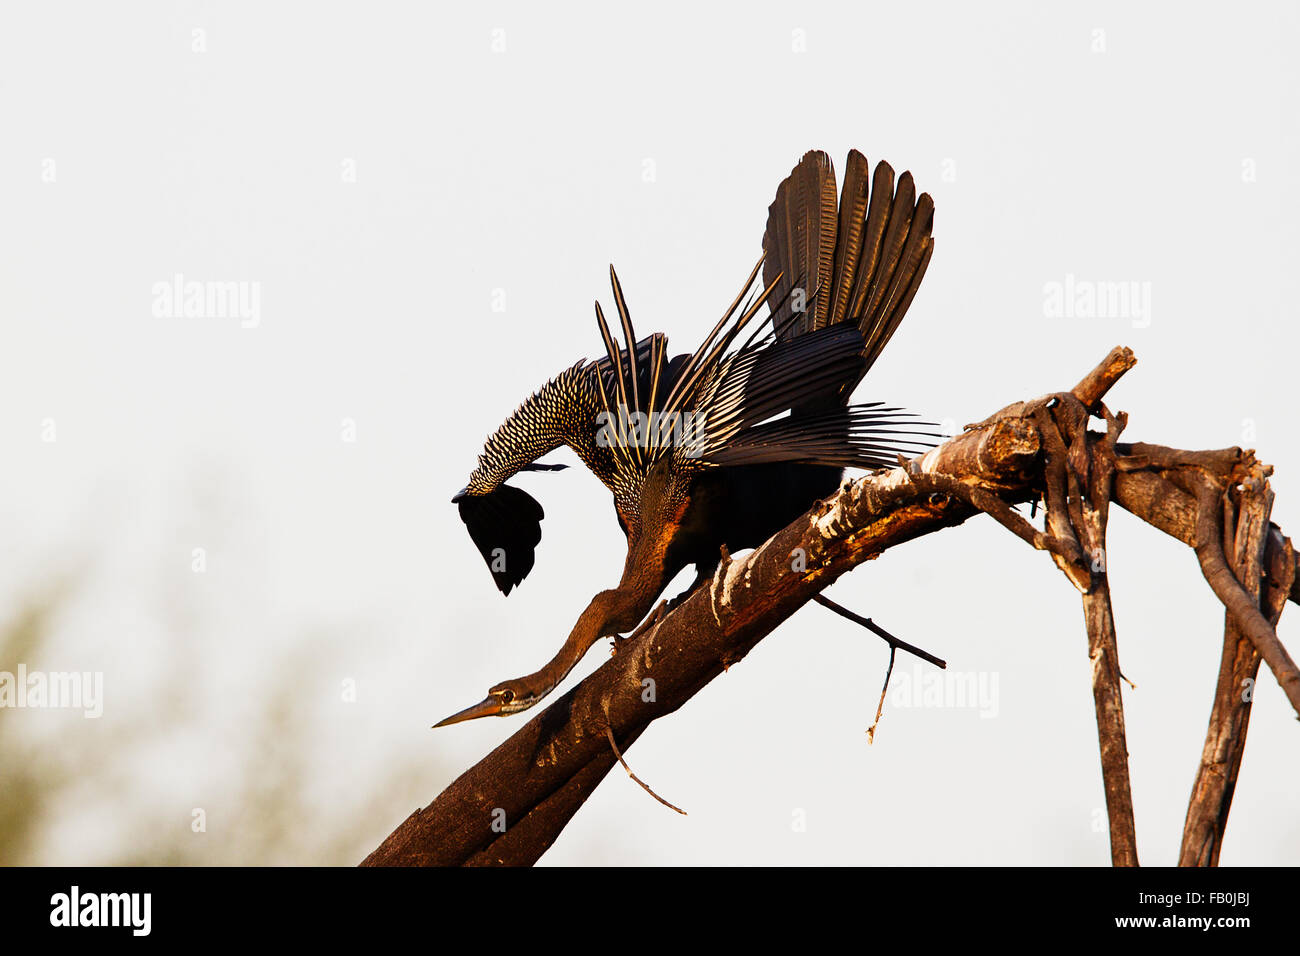 Indian darter at Bharatpur - Stock Image